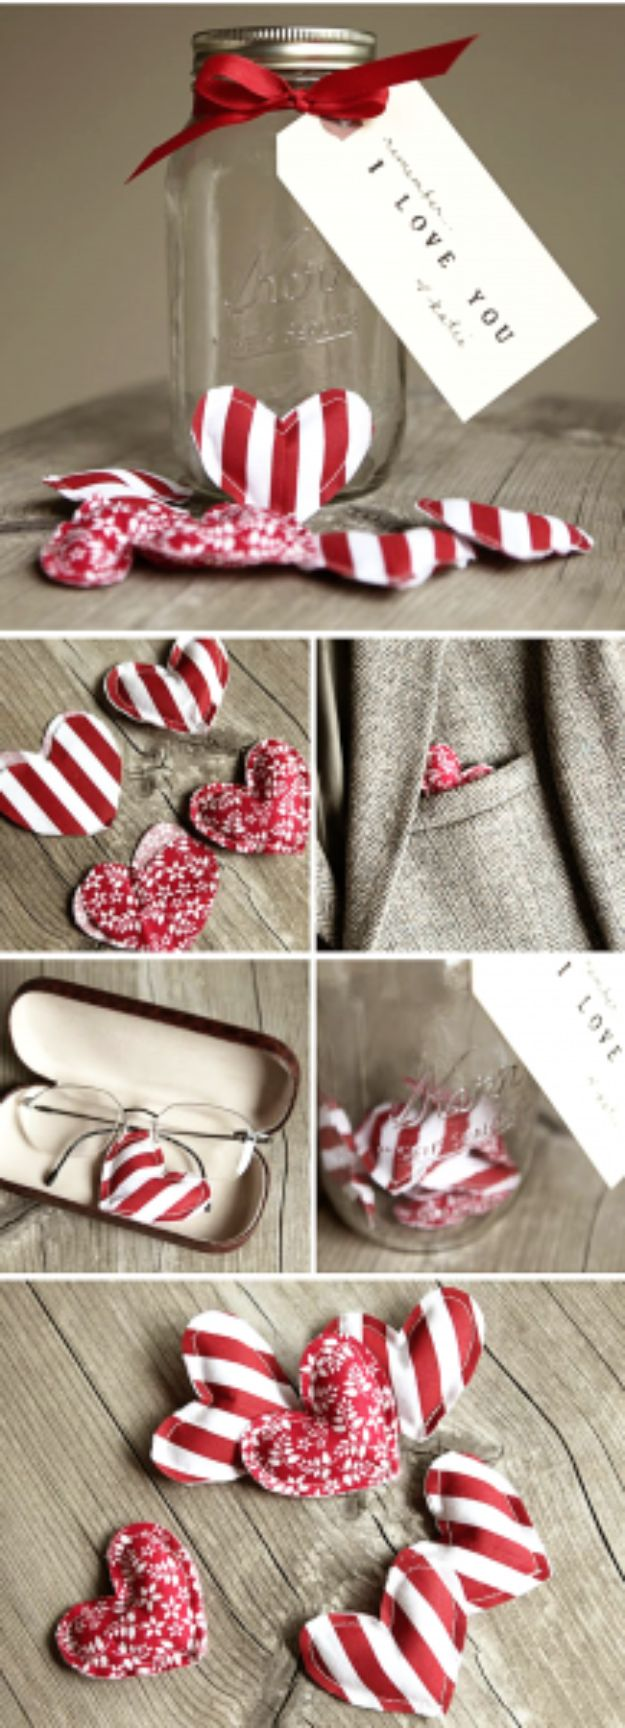 DIY Valentines Day Gifts for Her - Remember I Love You - Cool and Easy Things To Make for Your Wife, Girlfriend, Fiance - Creative and Cheap Do It Yourself Projects to Give Your Girl - Ladies Love These Ideas for Bath, Yard, Home and Kitchen, Outdoors - Make, Don't Buy Your Valentine http://diyjoy.com/diy-valentines-gifts-her